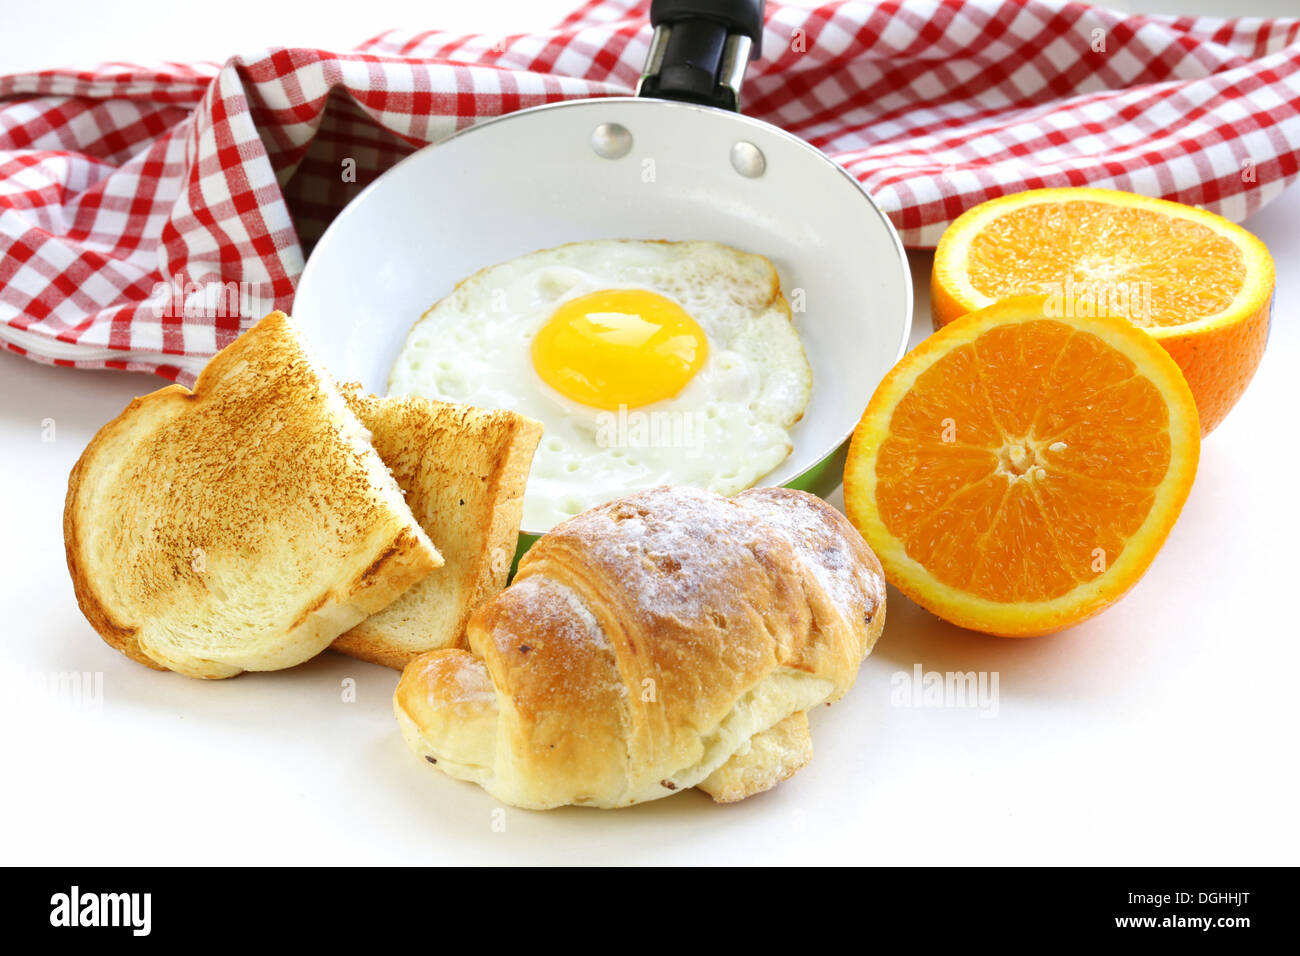 Continental breakfast - croissant, fried egg, toast and oranges - Stock Image